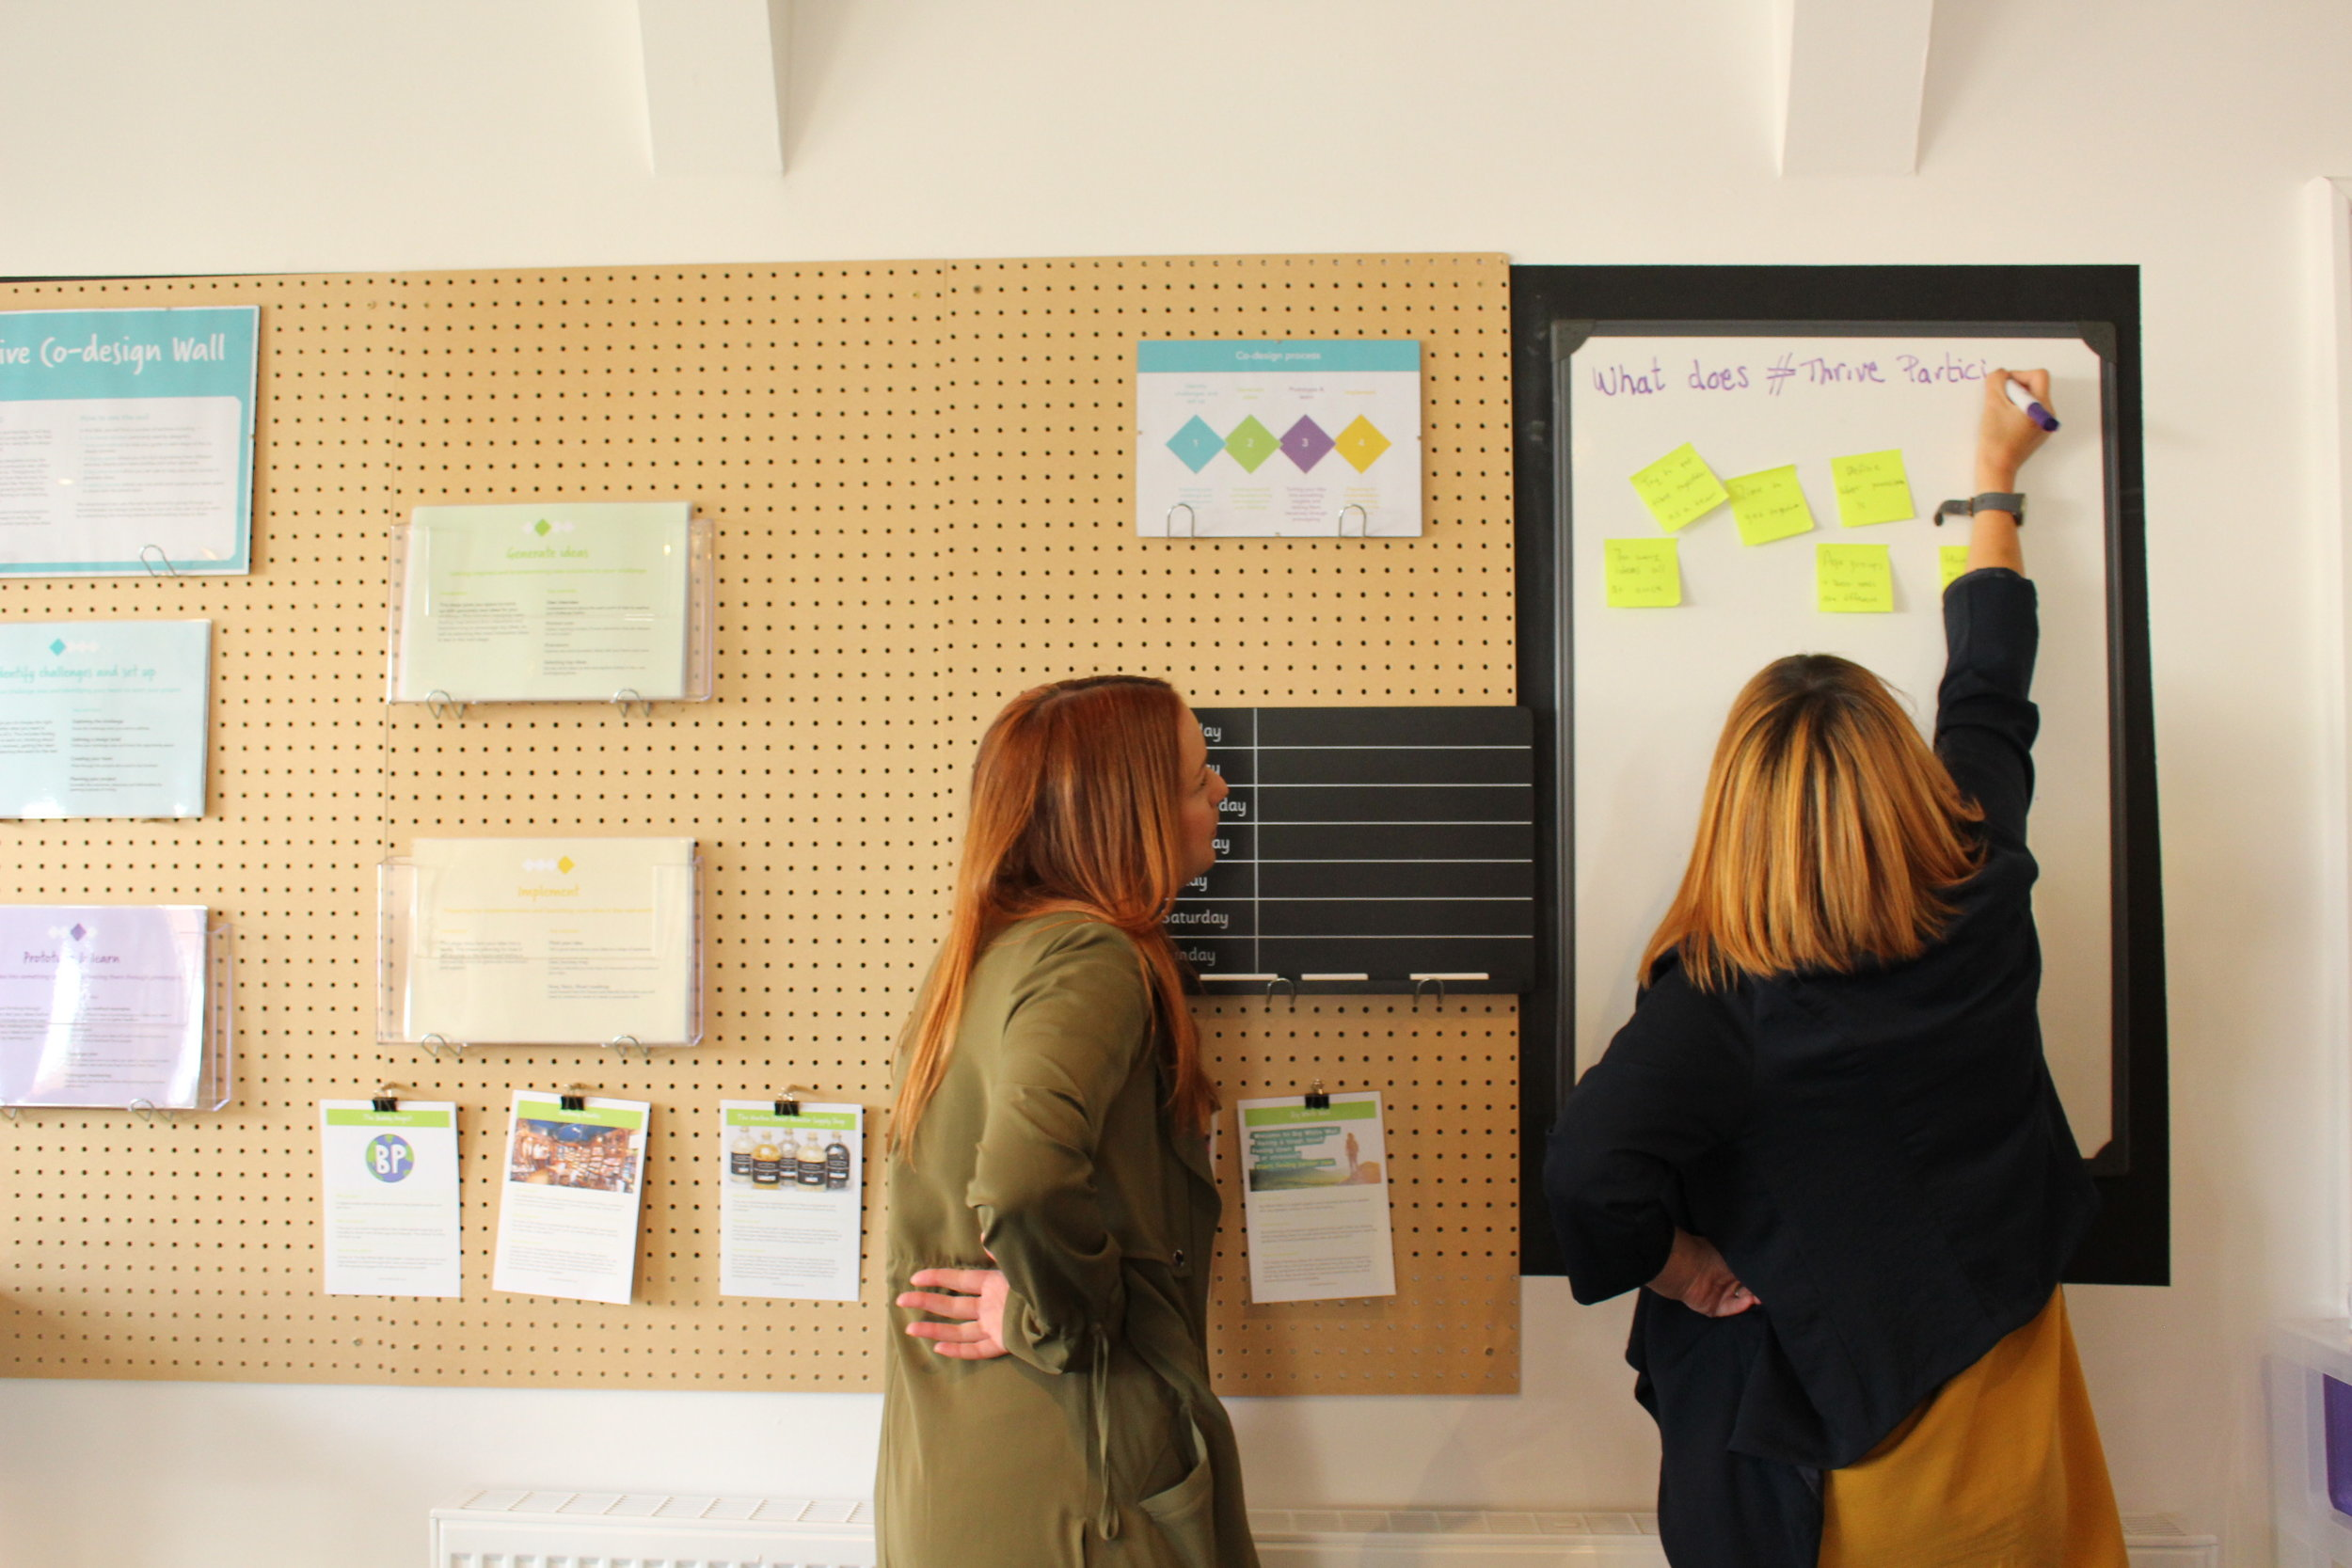 Staff using the Co-design Wall